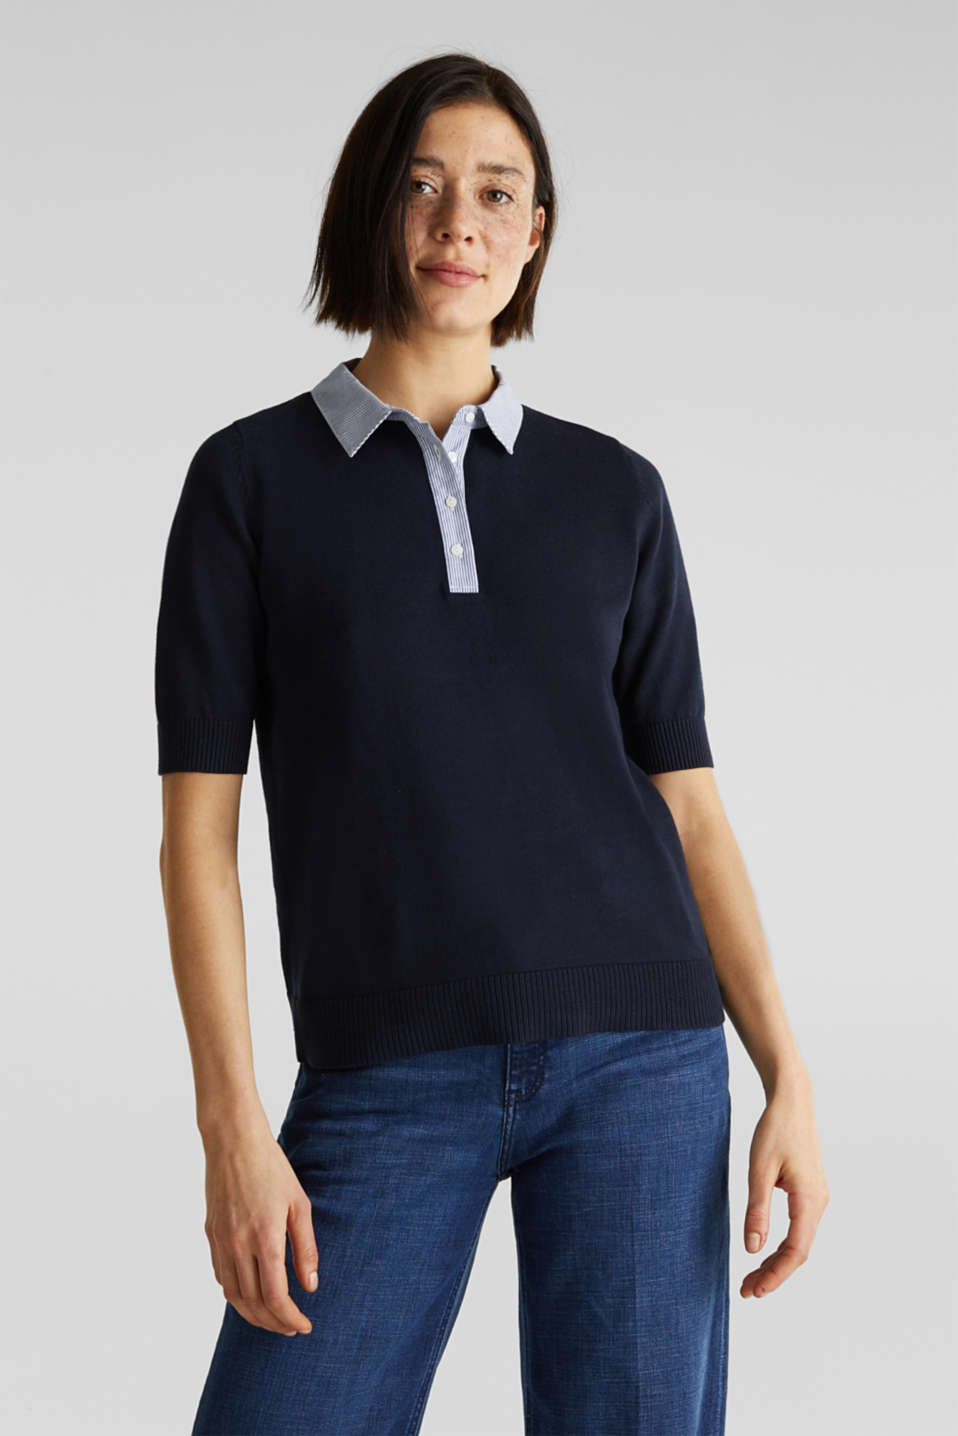 Esprit - Short-sleeved jumper with a fabric collar